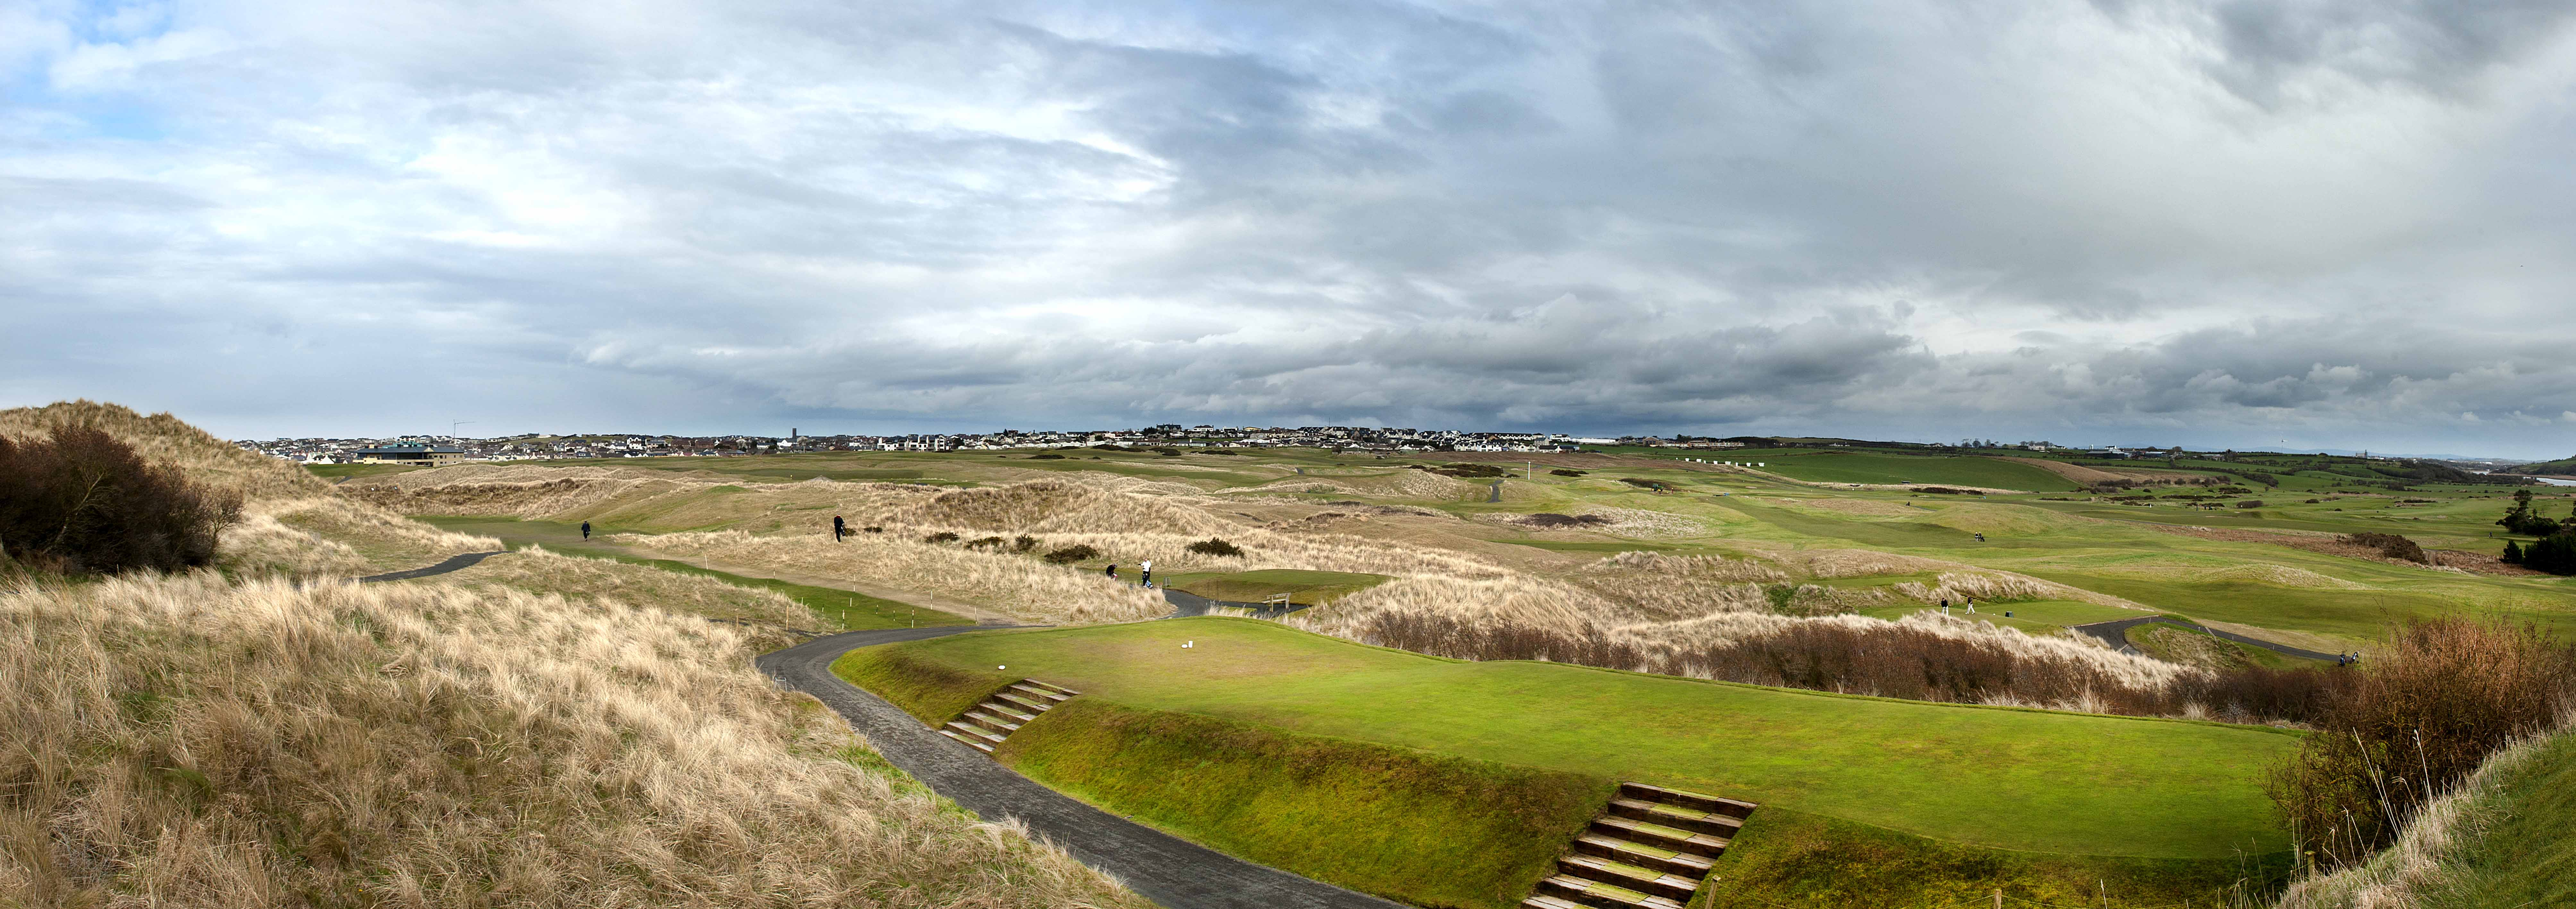 Portstewart GC 5 - Outsource CAD